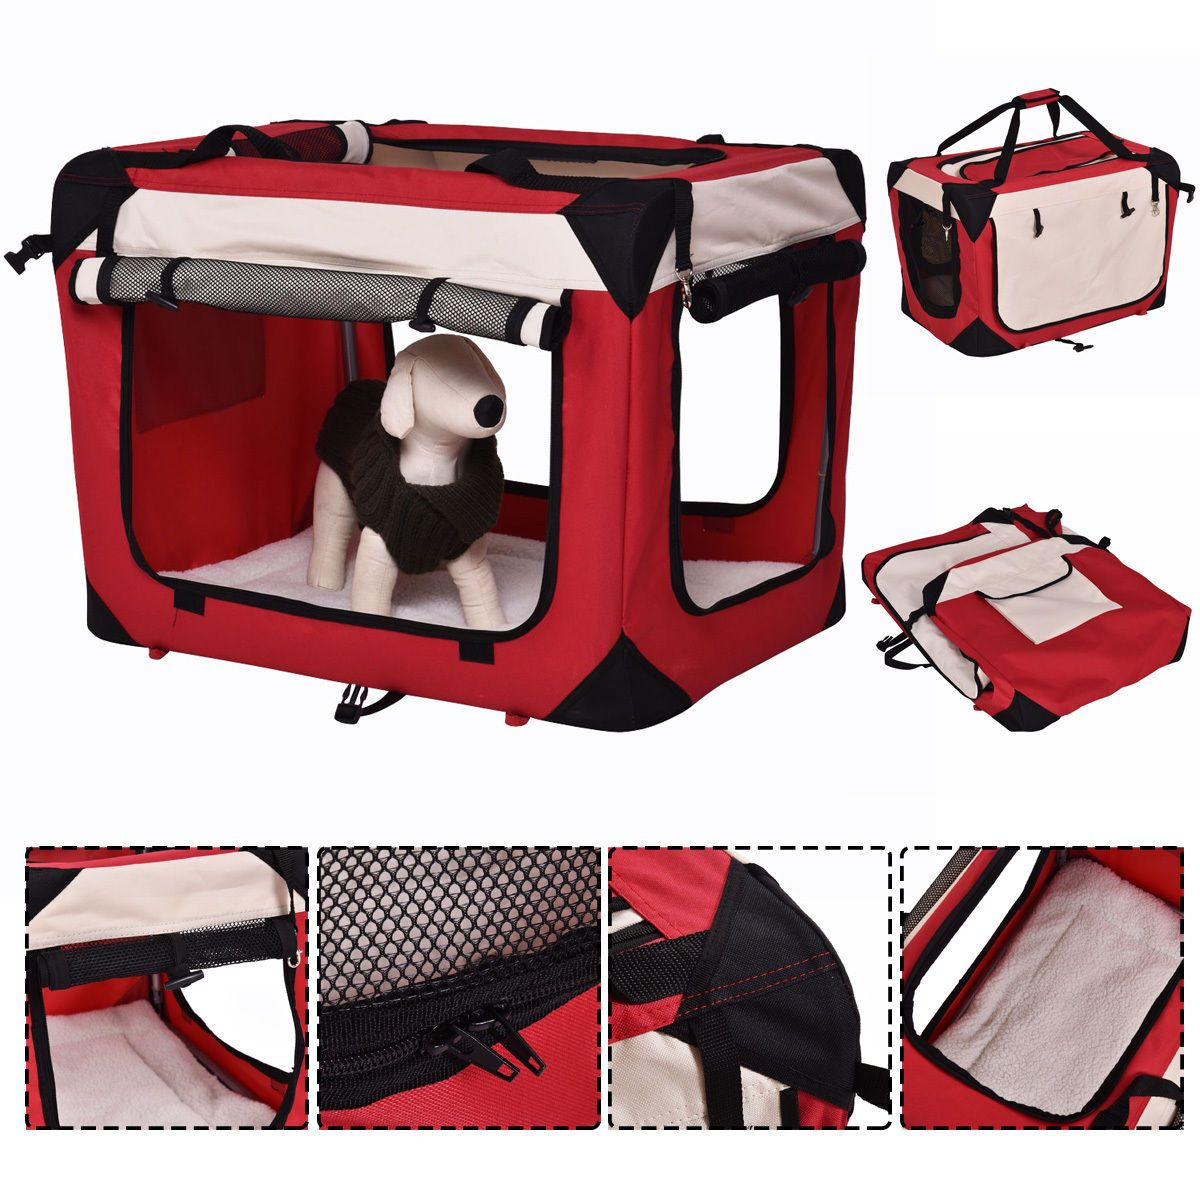 Details About New 4 Sizes Pet Dog Carrier Portable House Soft